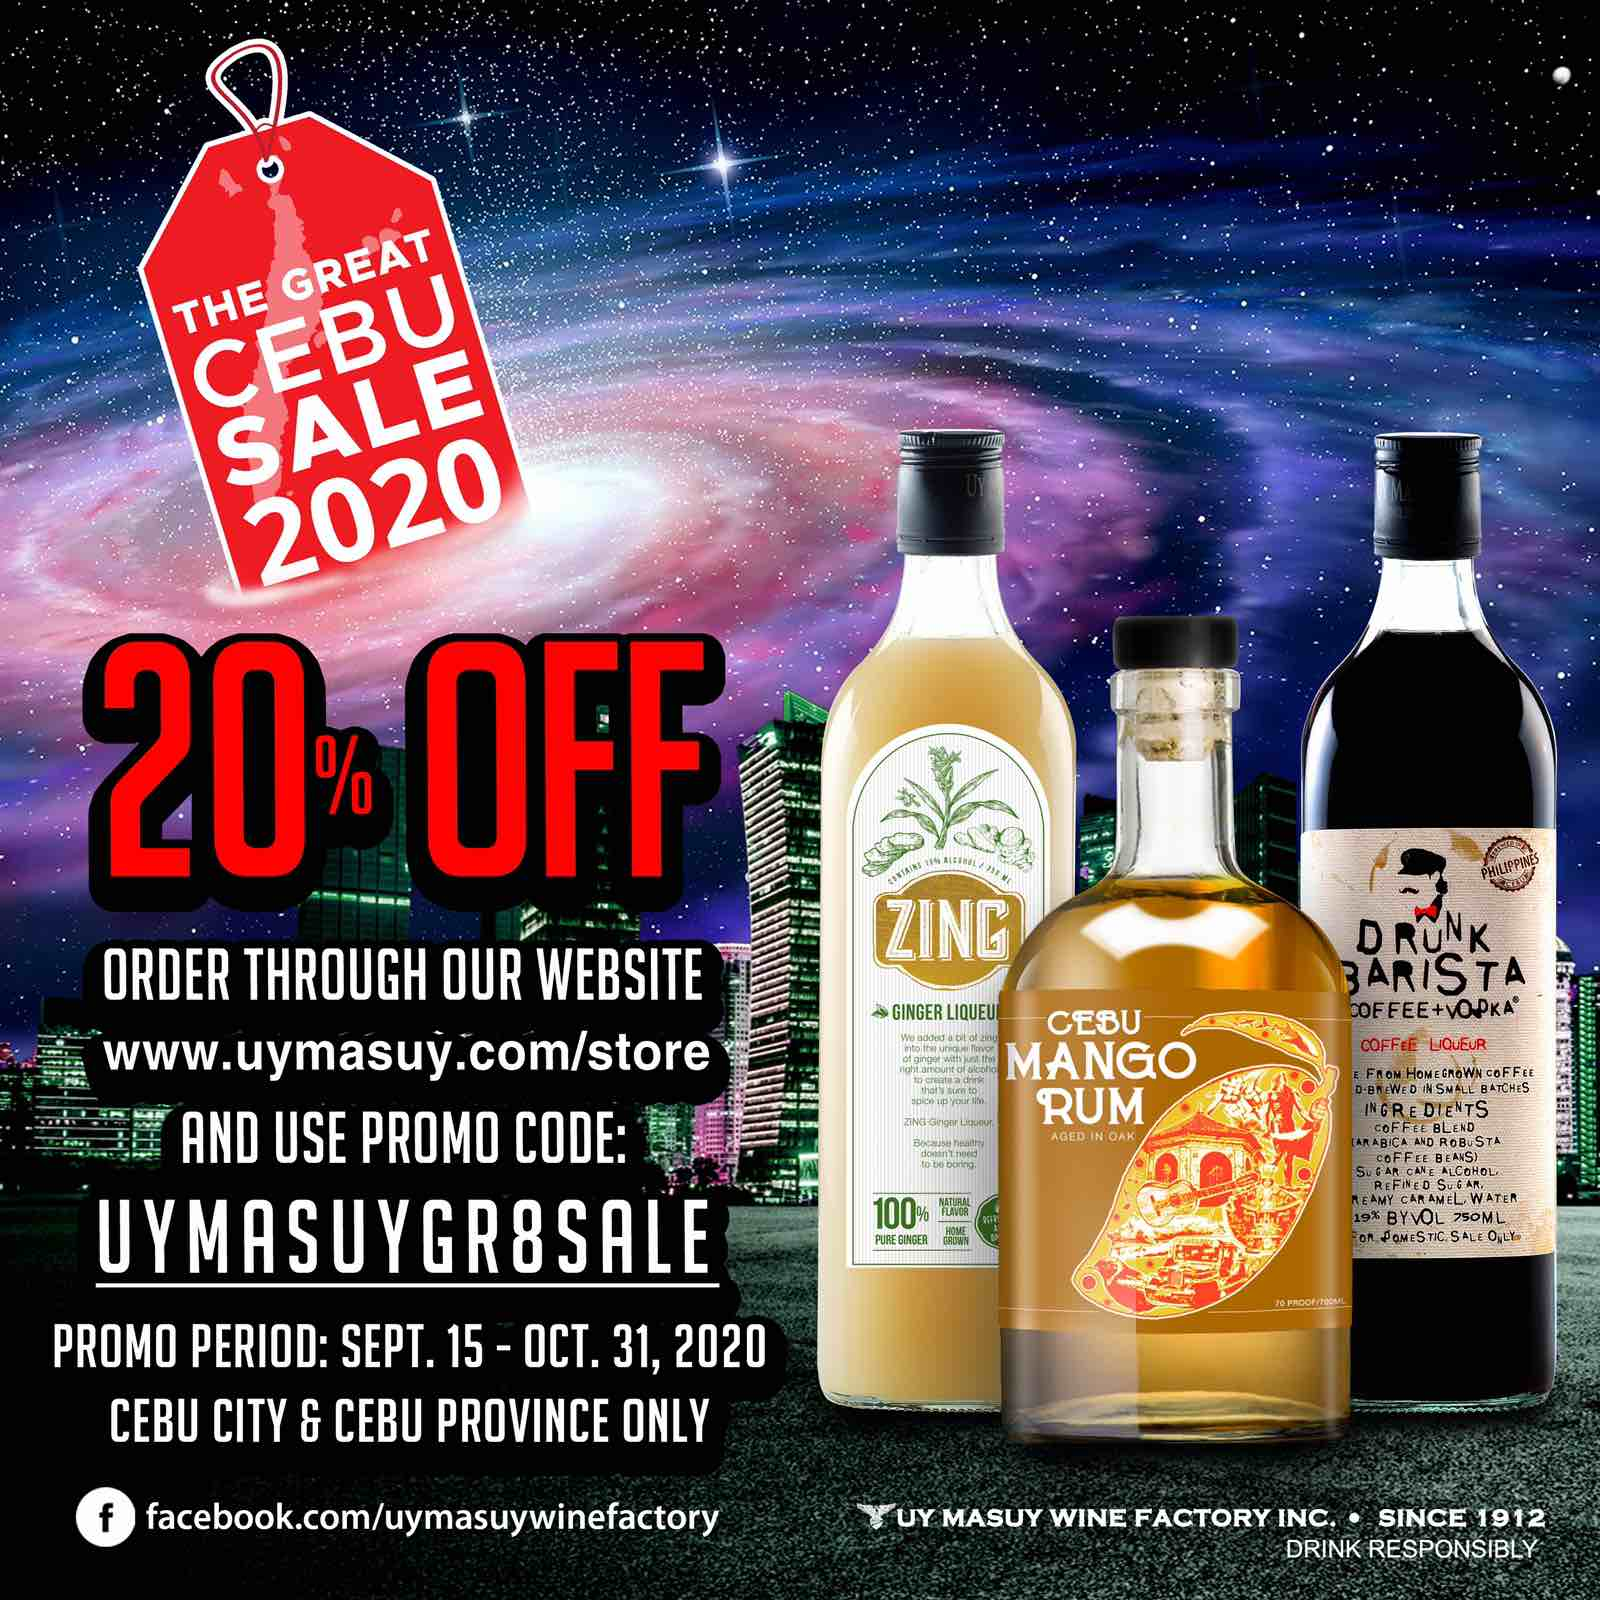 Uy Masuy offers 20% off on Drunk Barista, Cebu Mango Rum, and Zing Ginger Liqueur